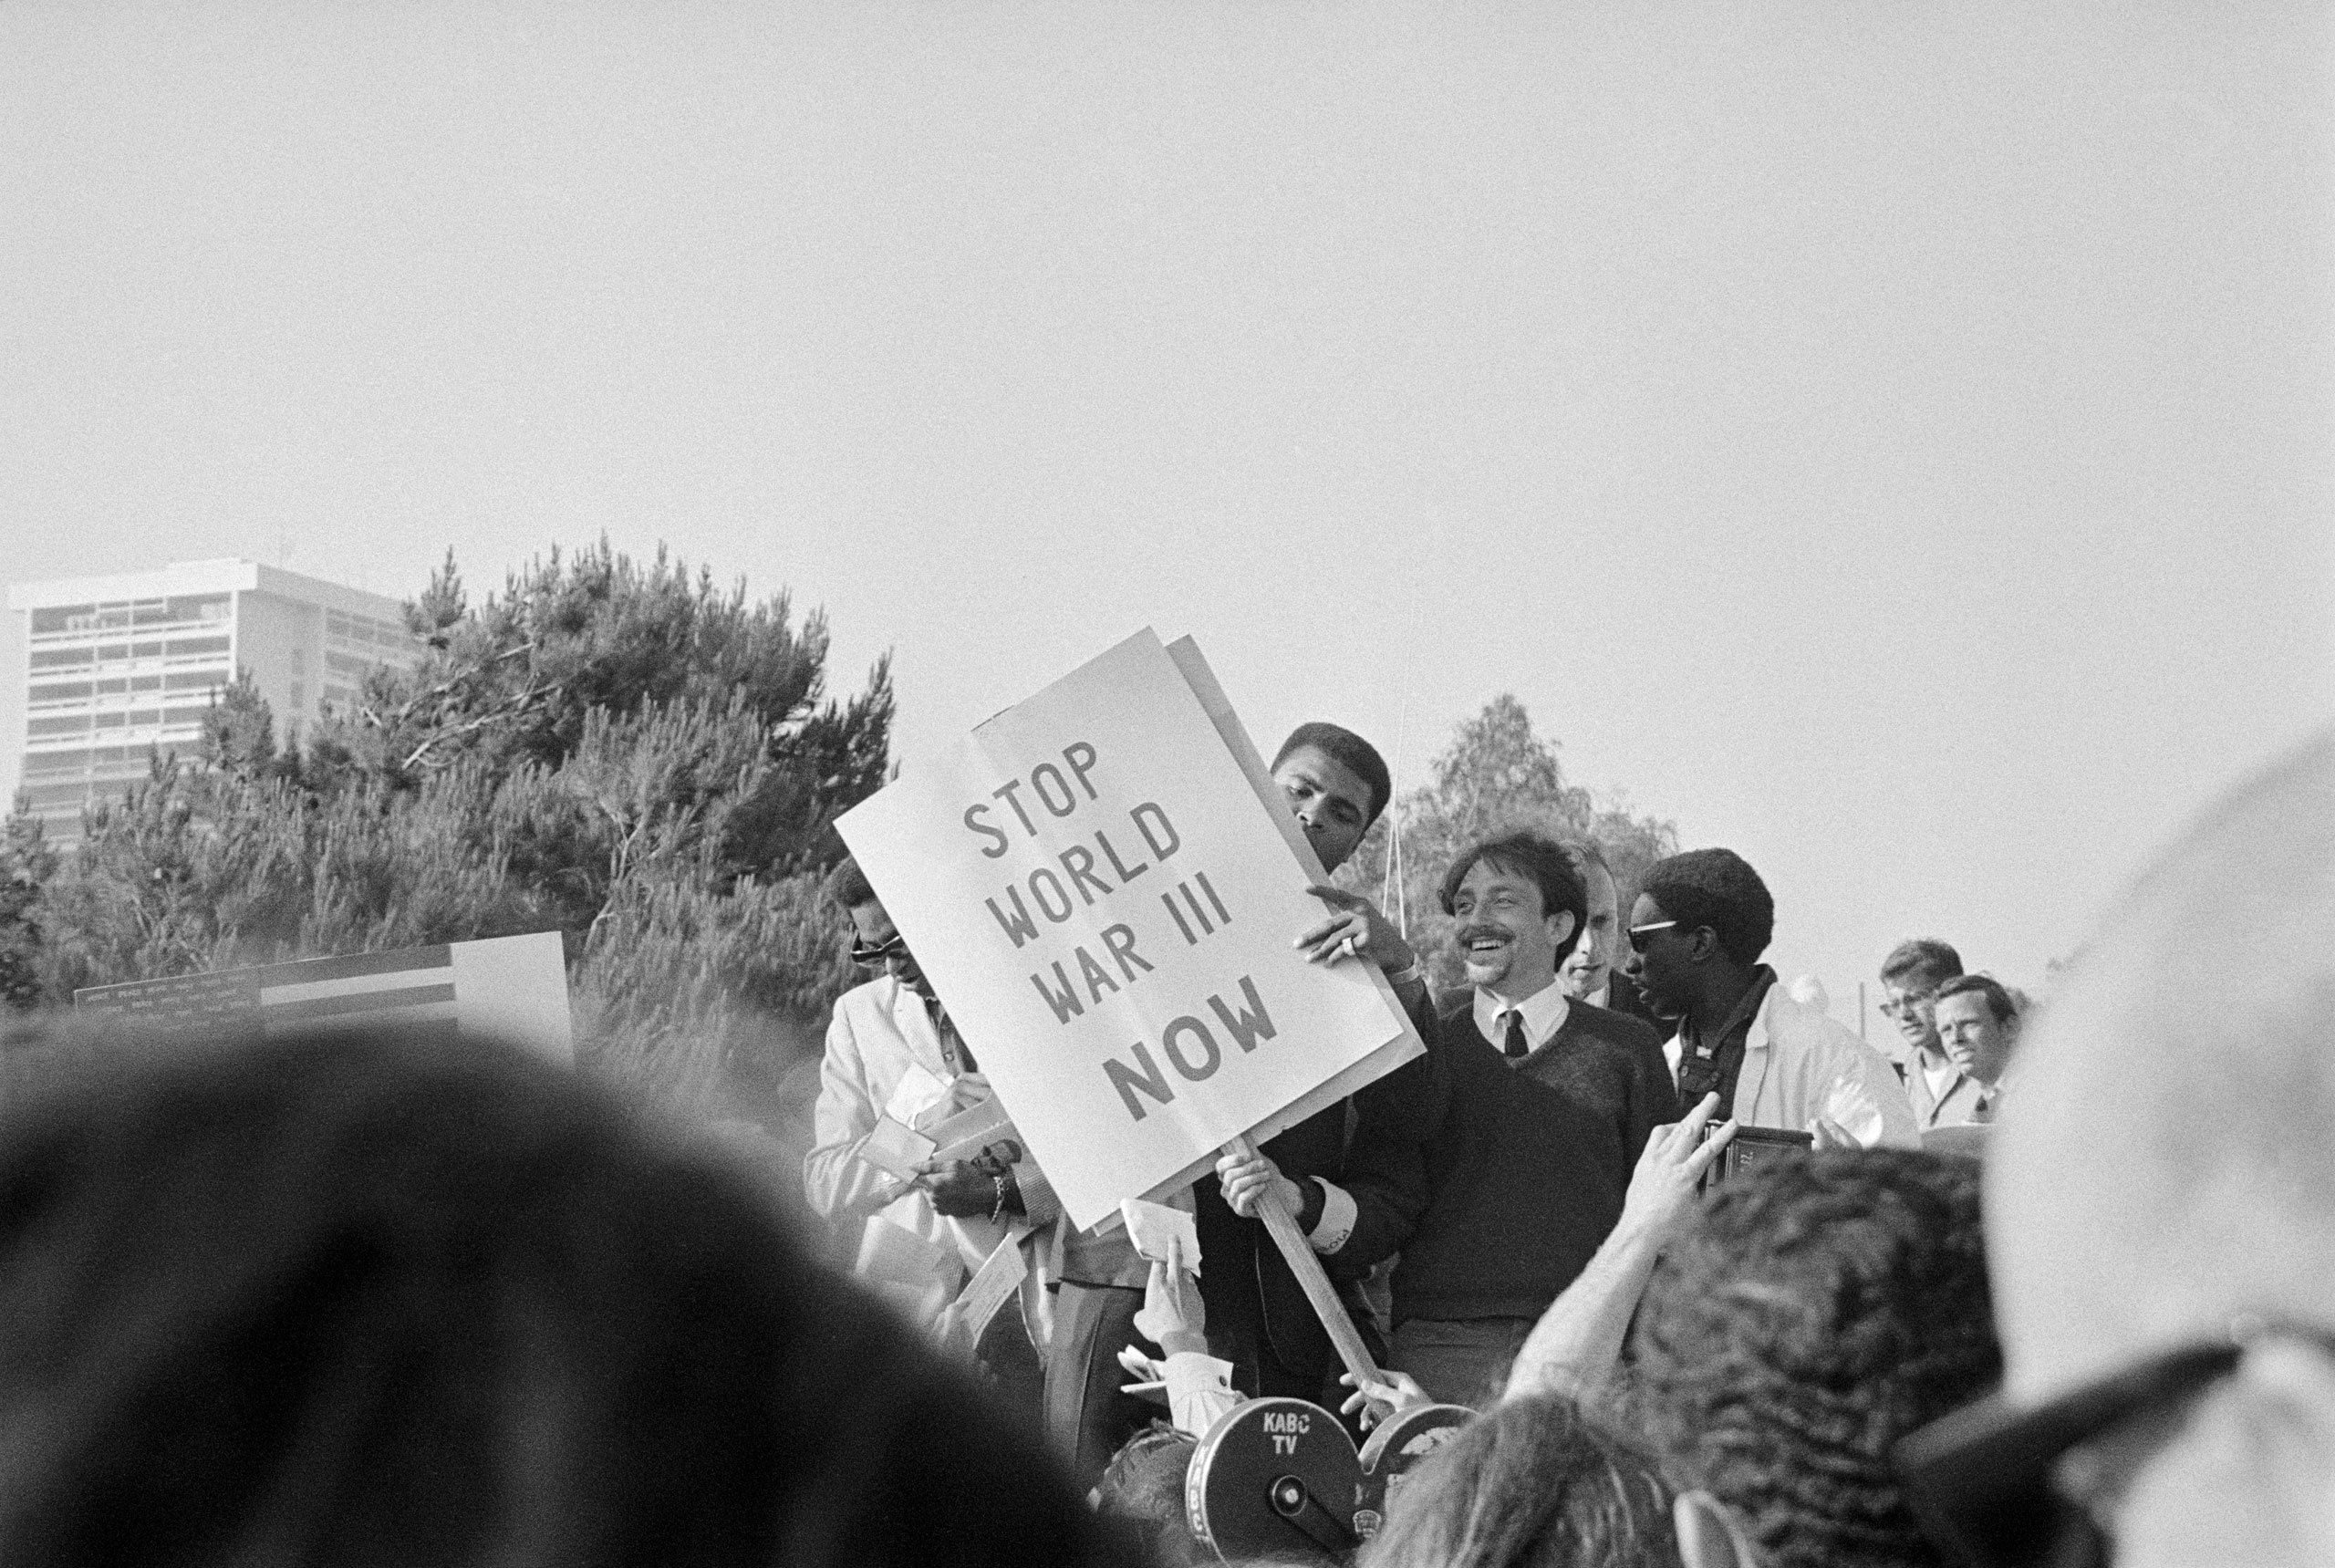 Ali peers around a 'Stop World War III' picket sign before addressing an anti-war group that had assembled to protest the Vietnam War on  June 23, 1967 in Los Angeles. The group of thousands staged a march to the Century Plaza Hotel where President Johnson was being honored which ended in a bloody battle with the police.